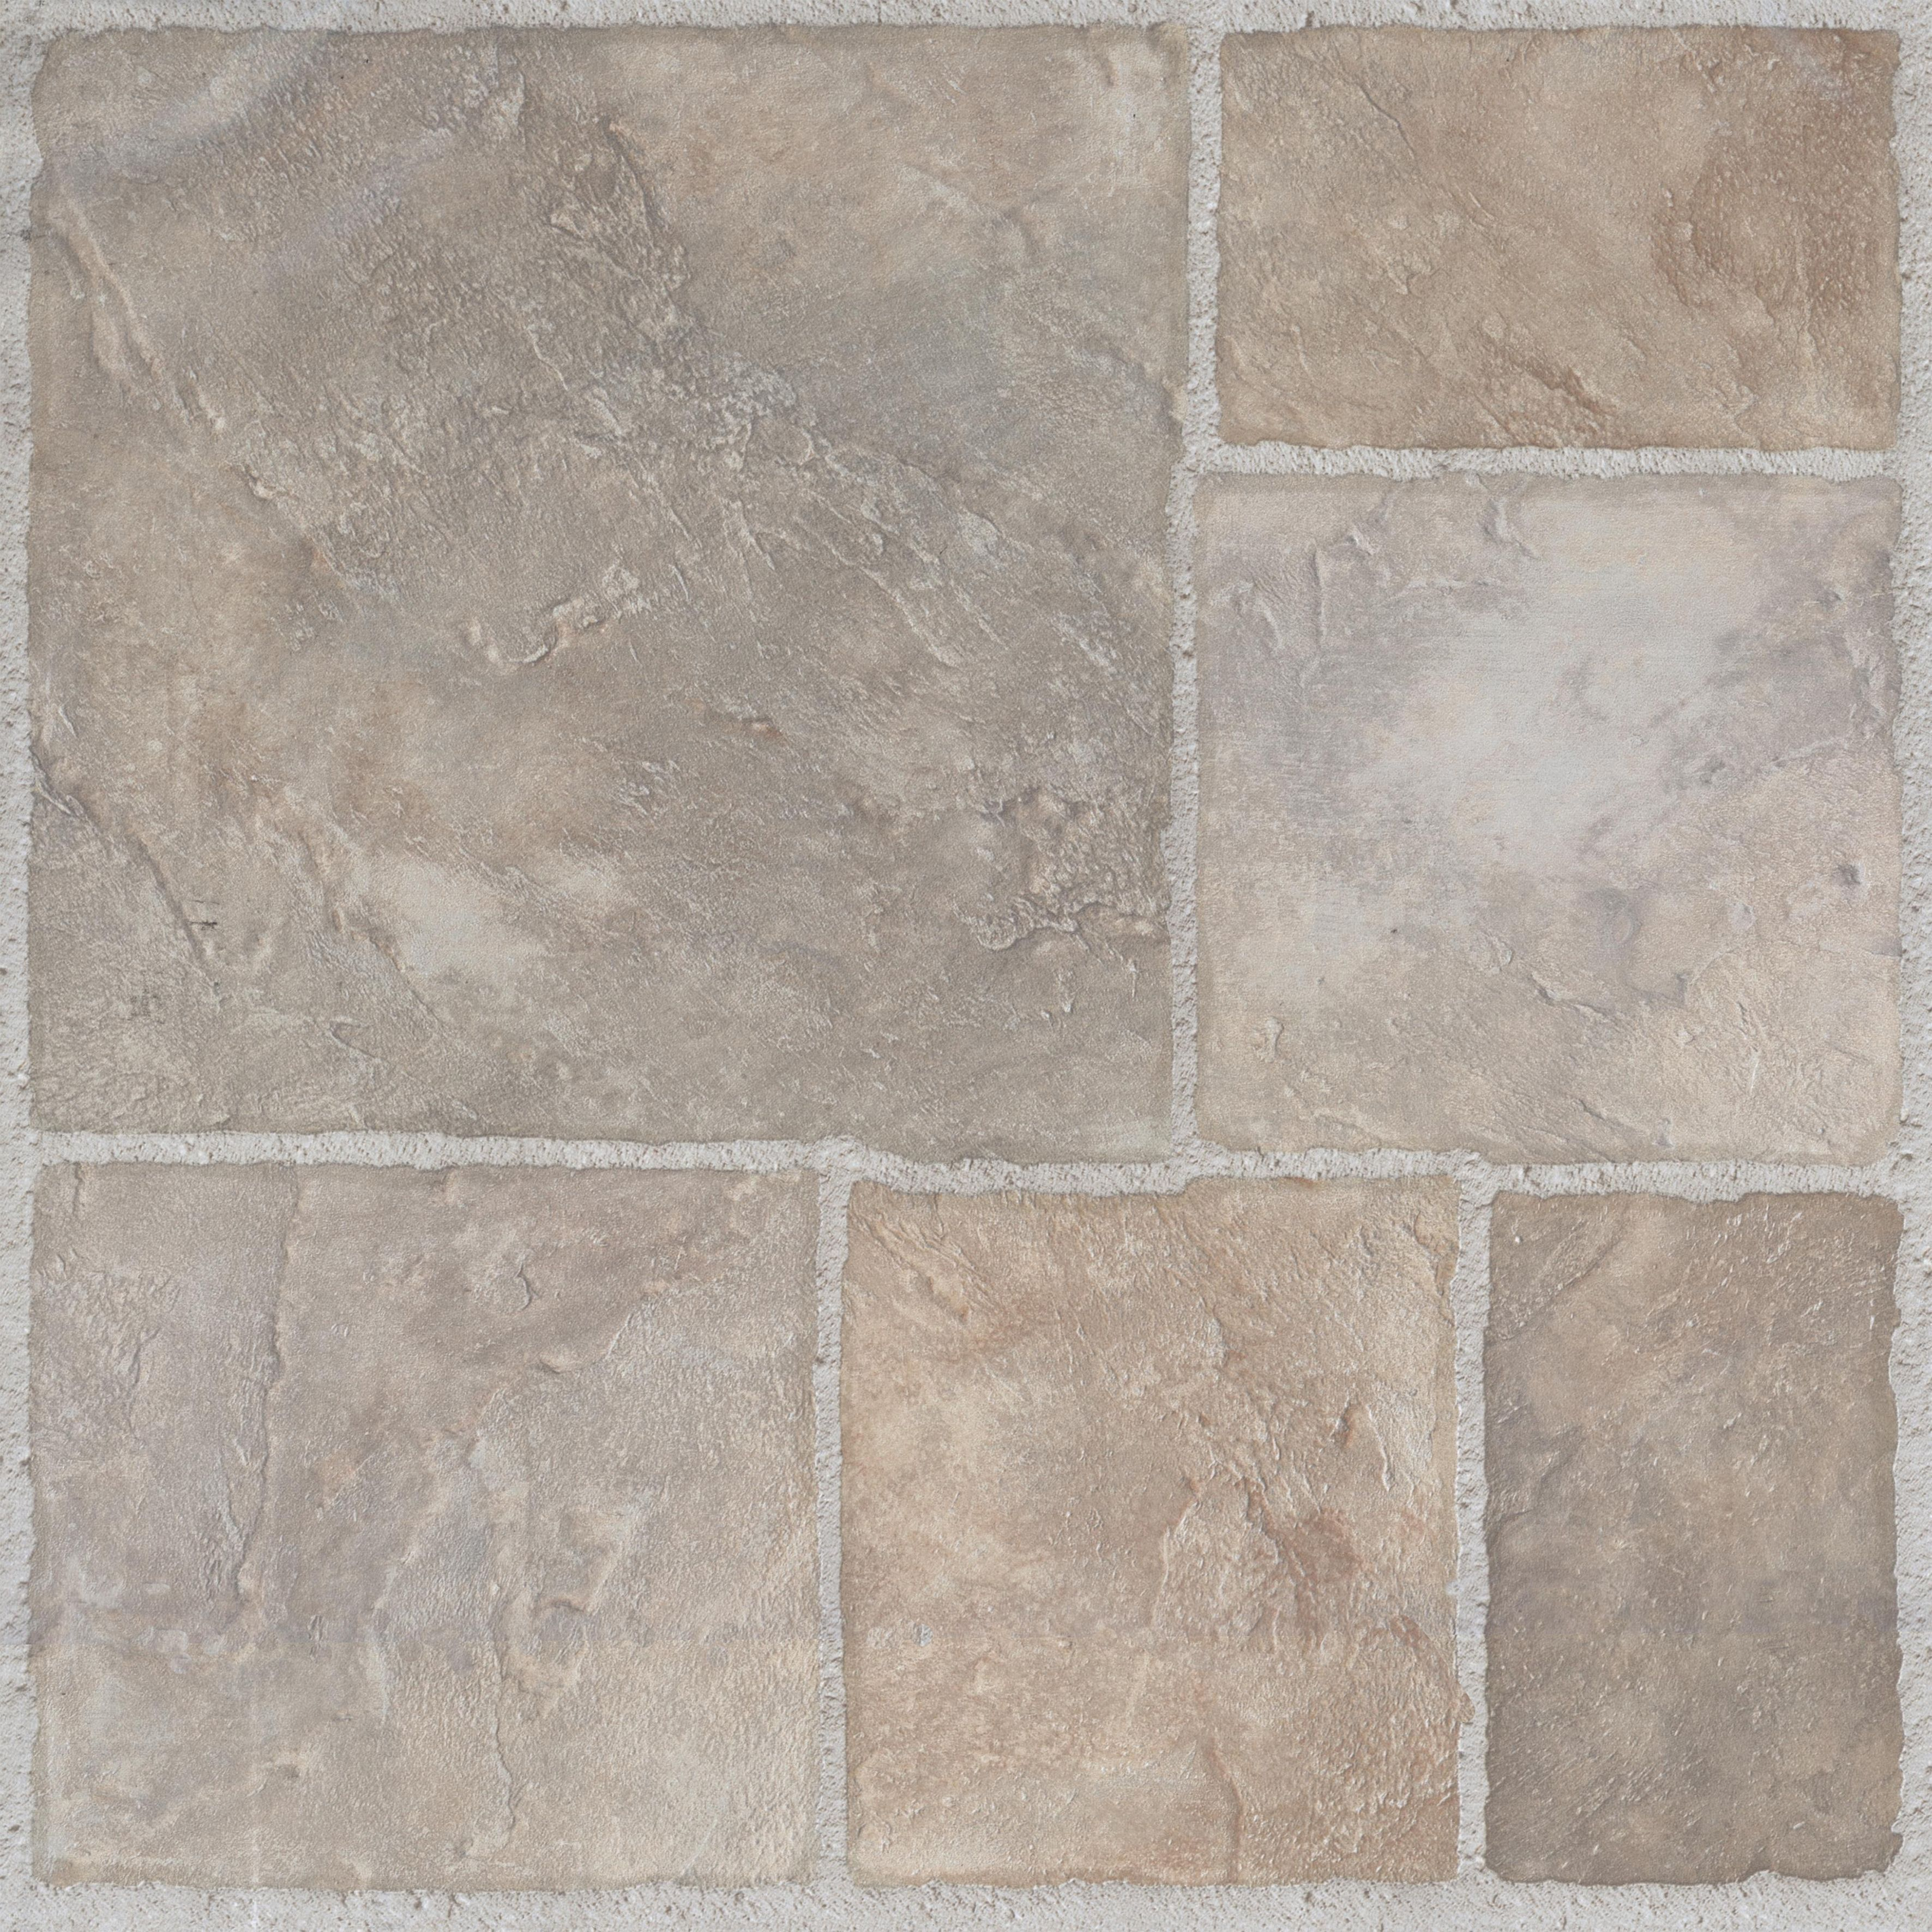 Vinyl tile effect flooring gallery home flooring design colours natural stone effect self adhesive vinyl tile 102 m pack colours natural stone effect self dailygadgetfo Choice Image